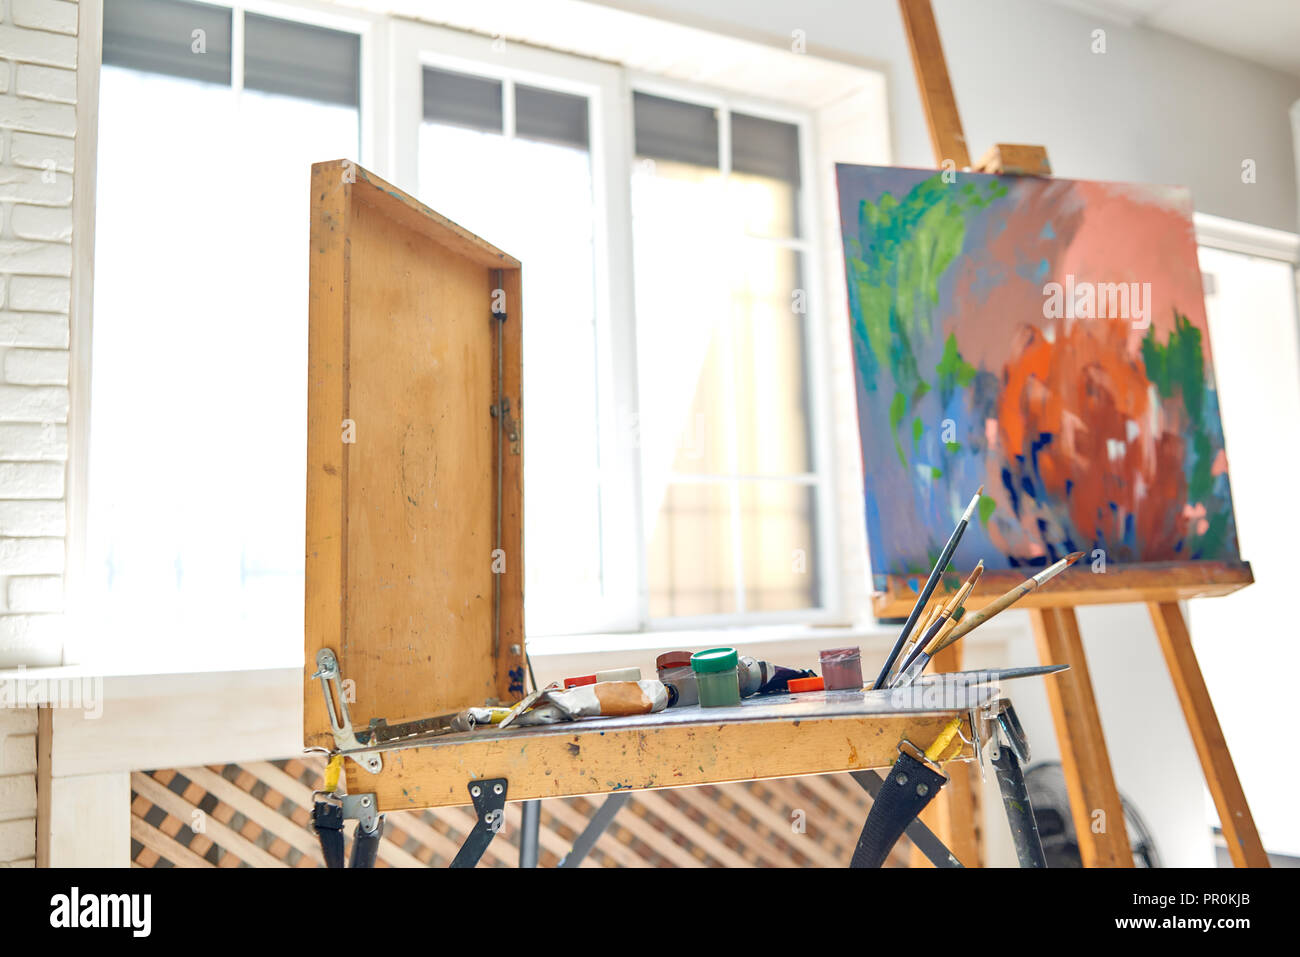 Close up of drawing instruments and tools, artist watercolors brushes and easel with abstract picture on background against big window at studio. Artist workspace in painter studio. Concept of hobby. - Stock Image